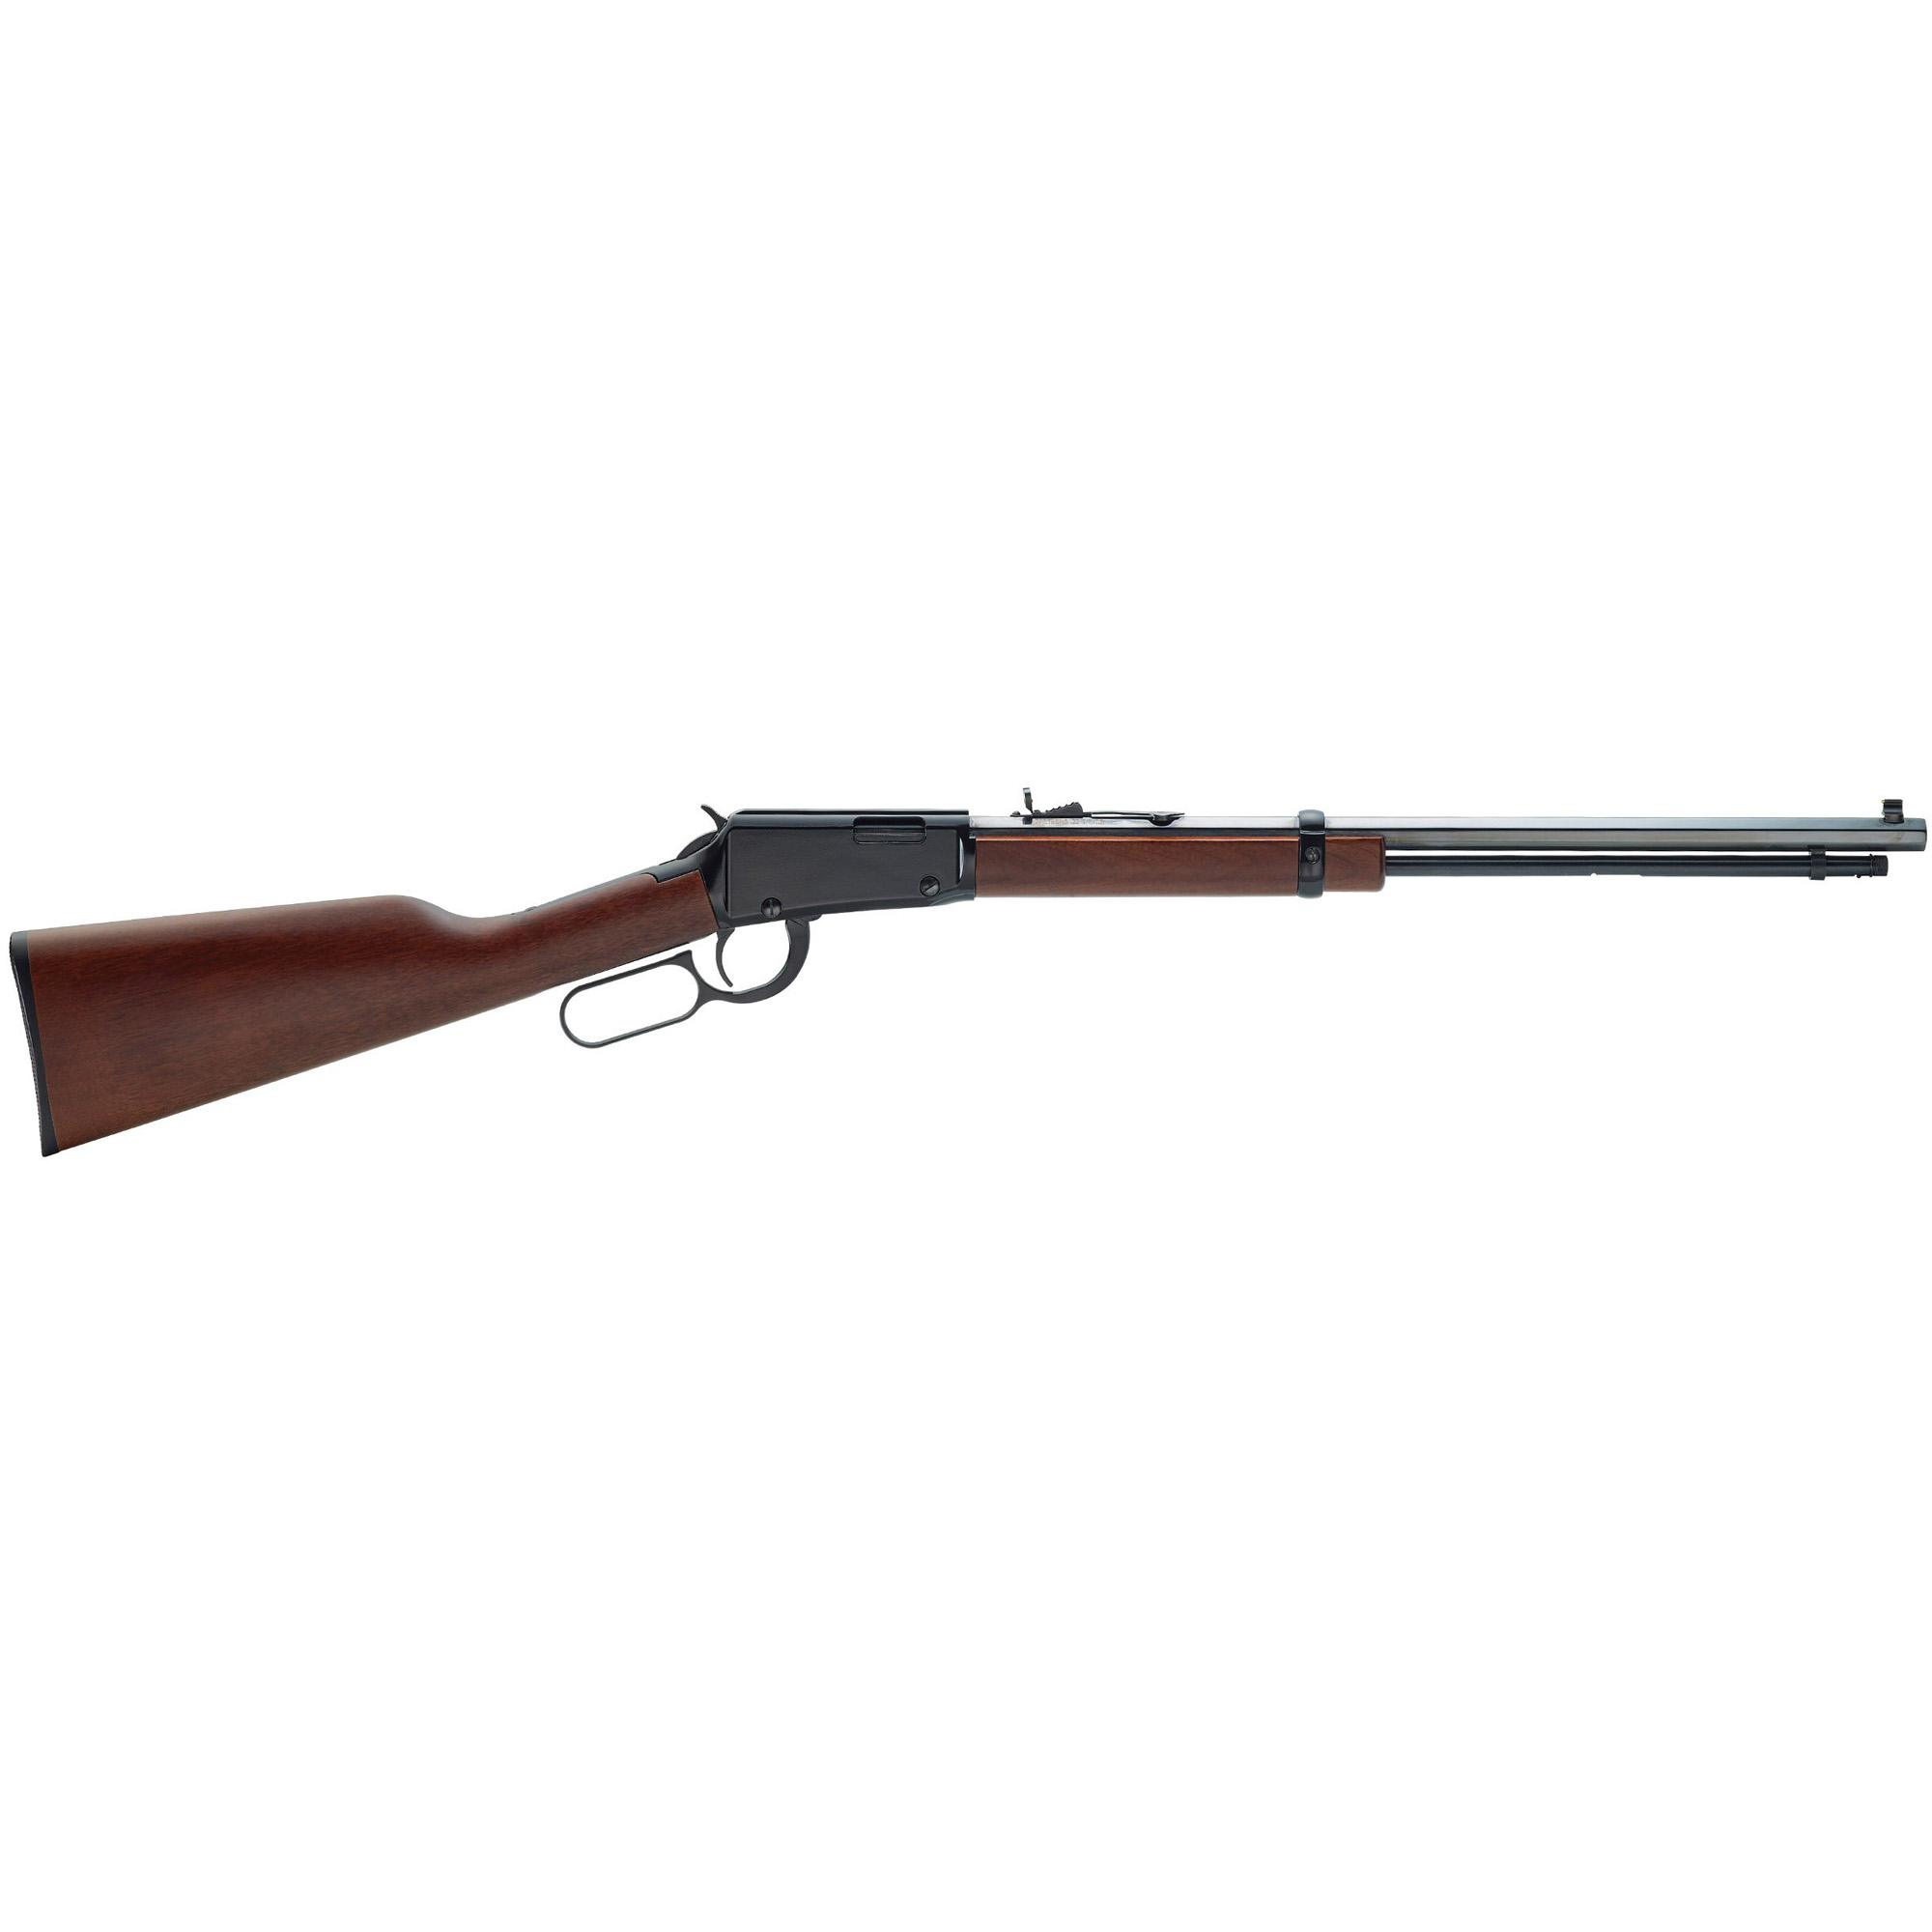 """The Henry Lever Action is a classic Western-style lever action rifle and one of the most popular rimfire rifles on the market today. The reason for its popularity is because it shoots great"""" looks great and is remarkably affordable - about half the price of the competition's rifles."""